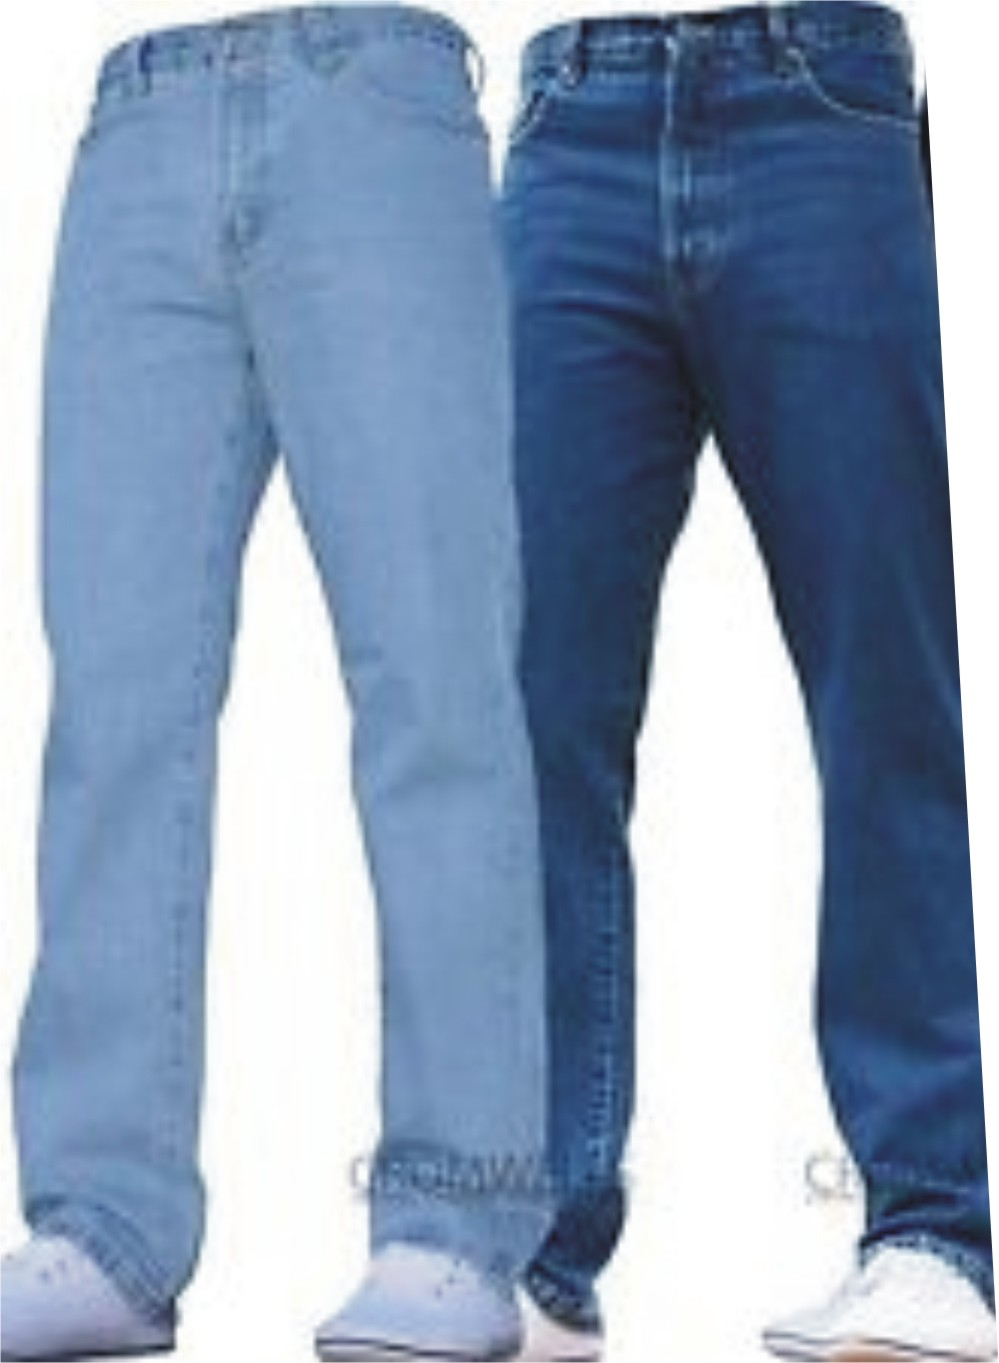 Branded Jeans for Men under Rs. 399 - Mar 2019  b4a38ed078e08